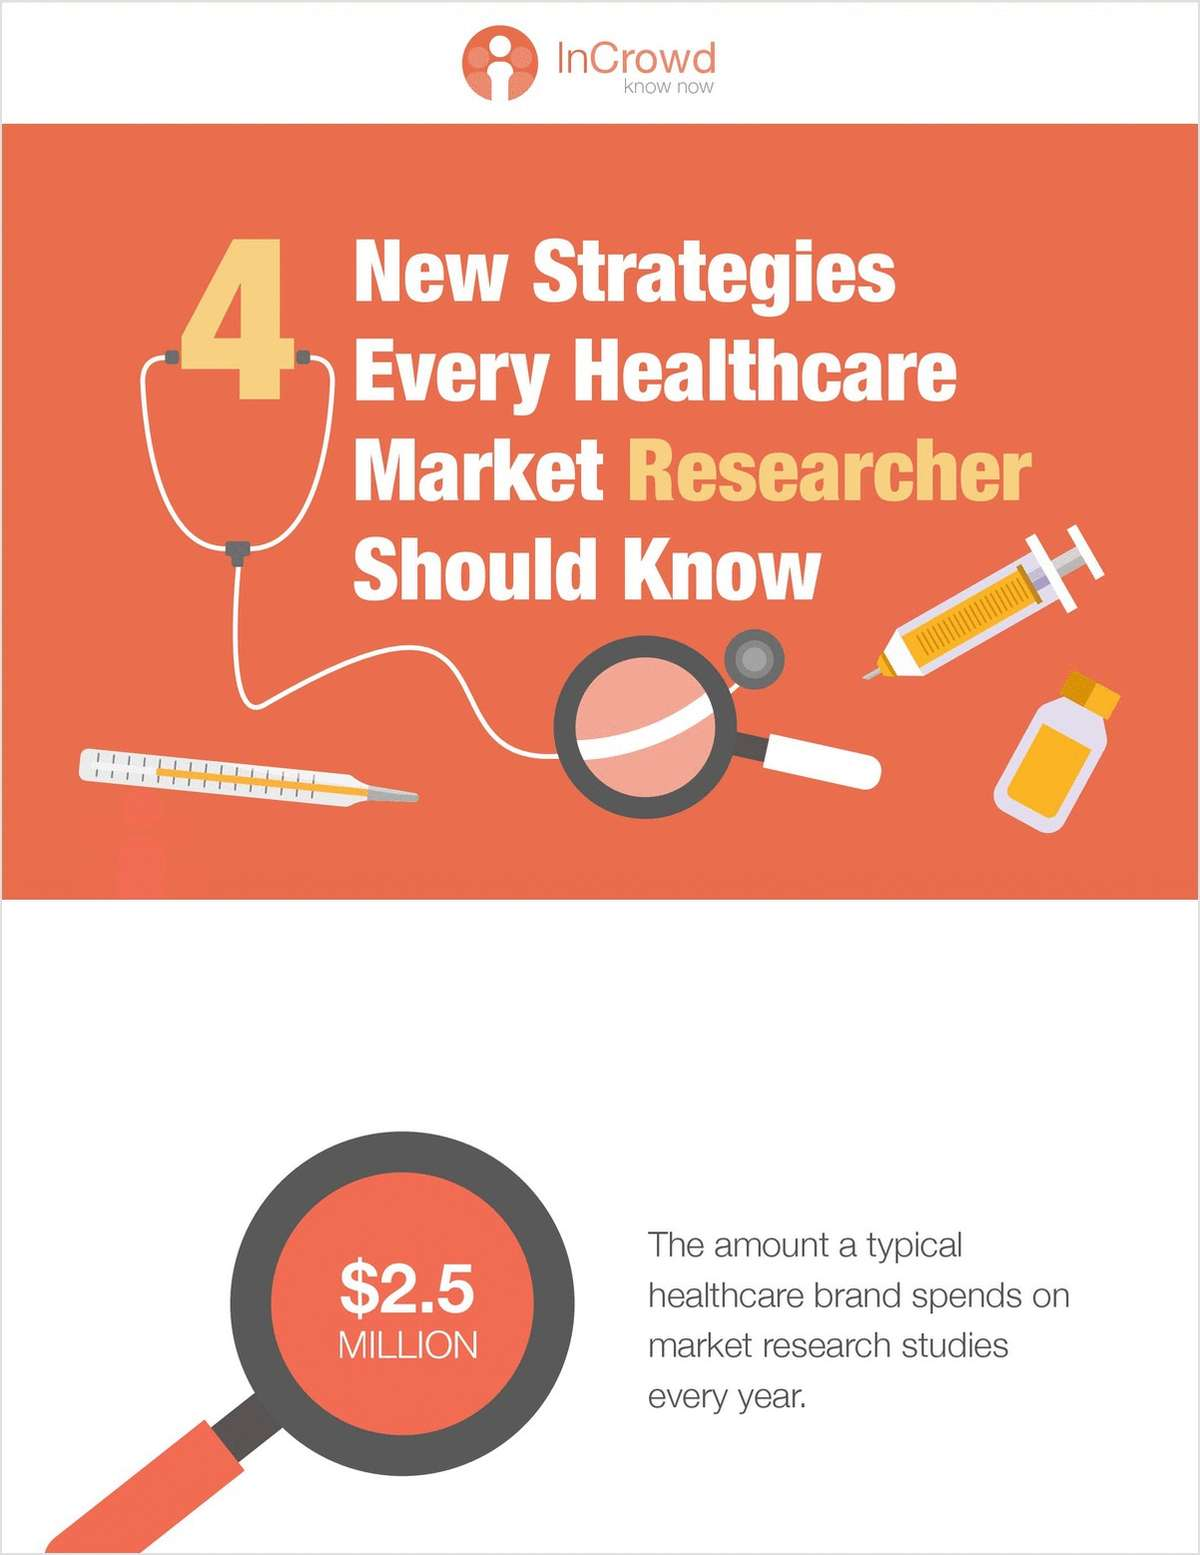 4 New Strategies Every Healthcare Market Researcher Should Know